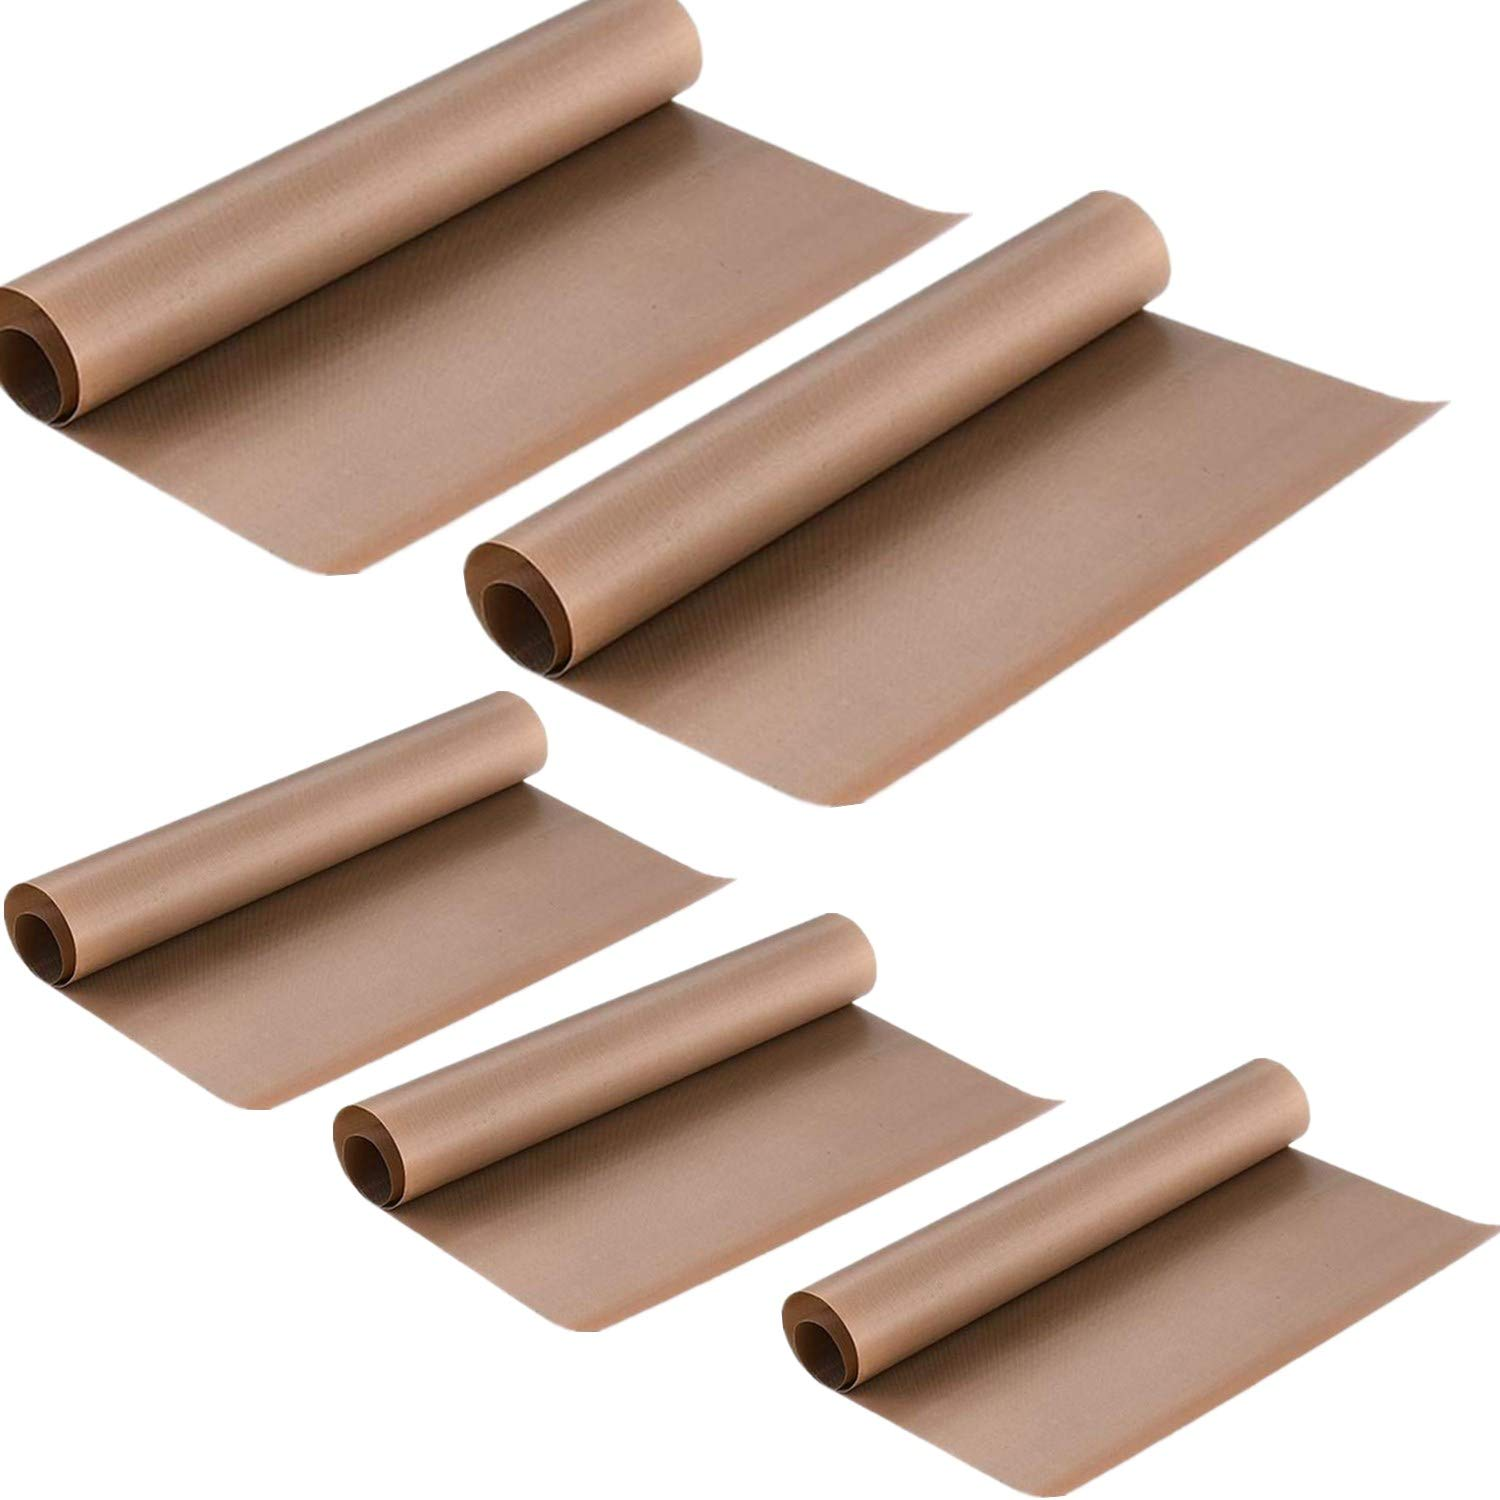 Teflon Sheet for Heat Press Transfer Sheet Non Stick Heat Resistant Craft Mat(5 Pack, 24×16& 16x12, Brown) 24×16&16x12 Weliu